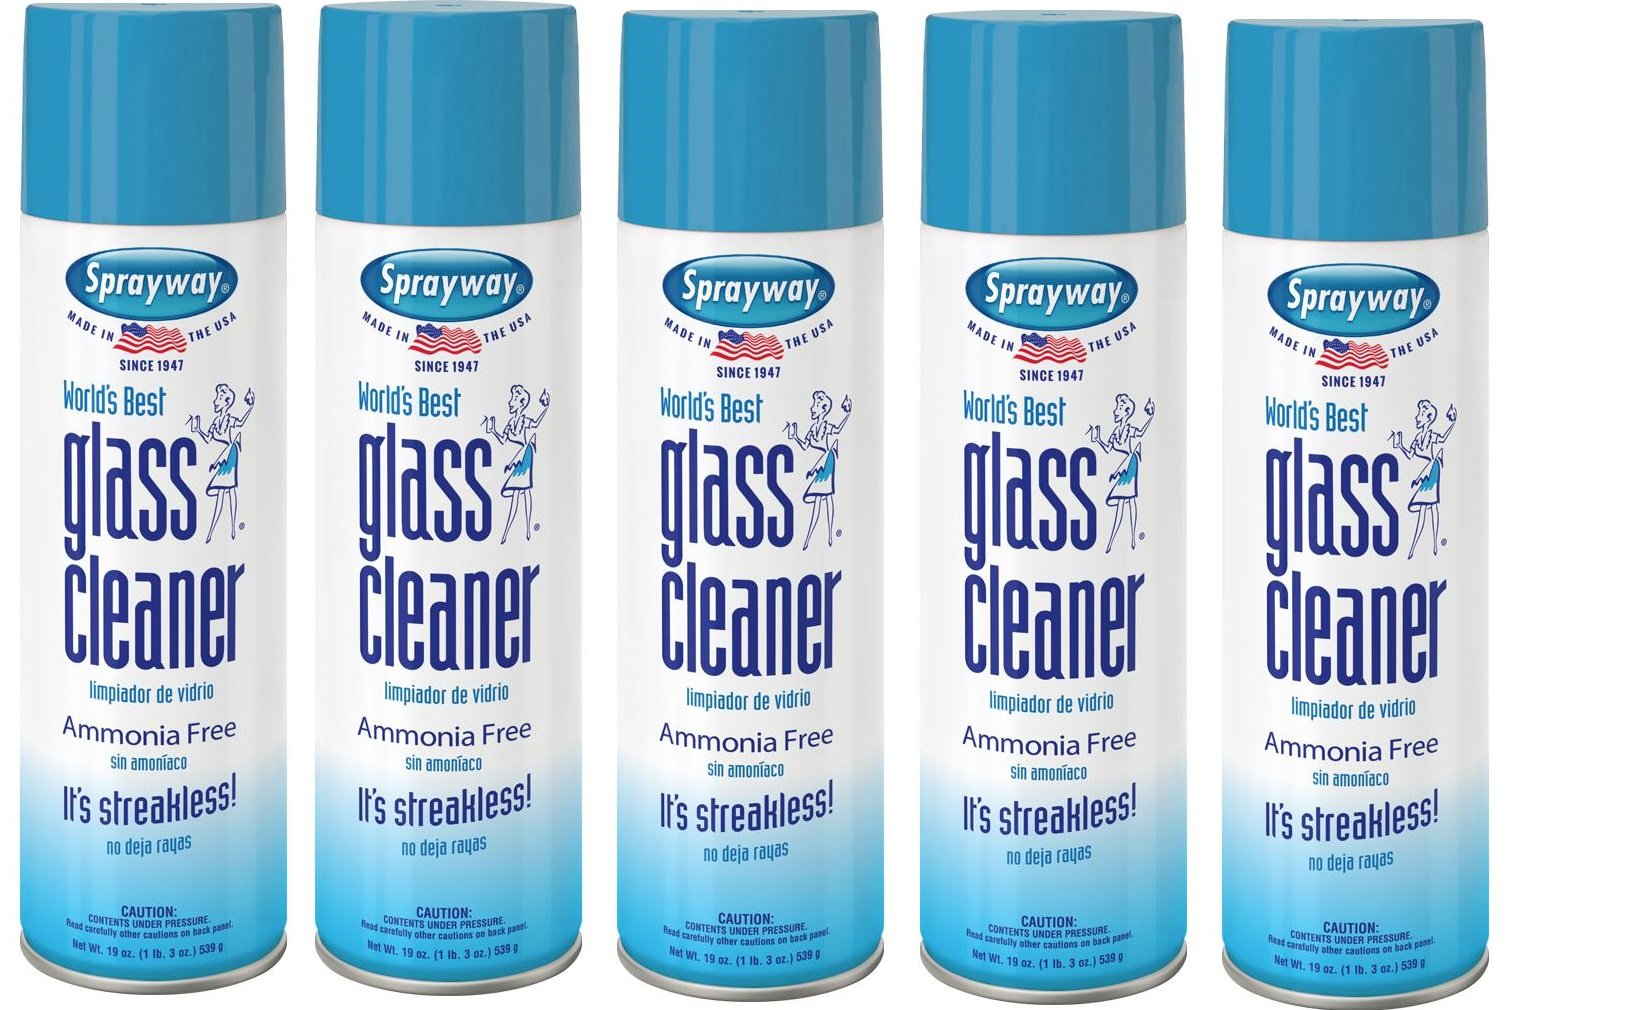 Sprayway, Sprayway Glass Cleaner, 19 oz Cans, Pack of 5 by Sprayway